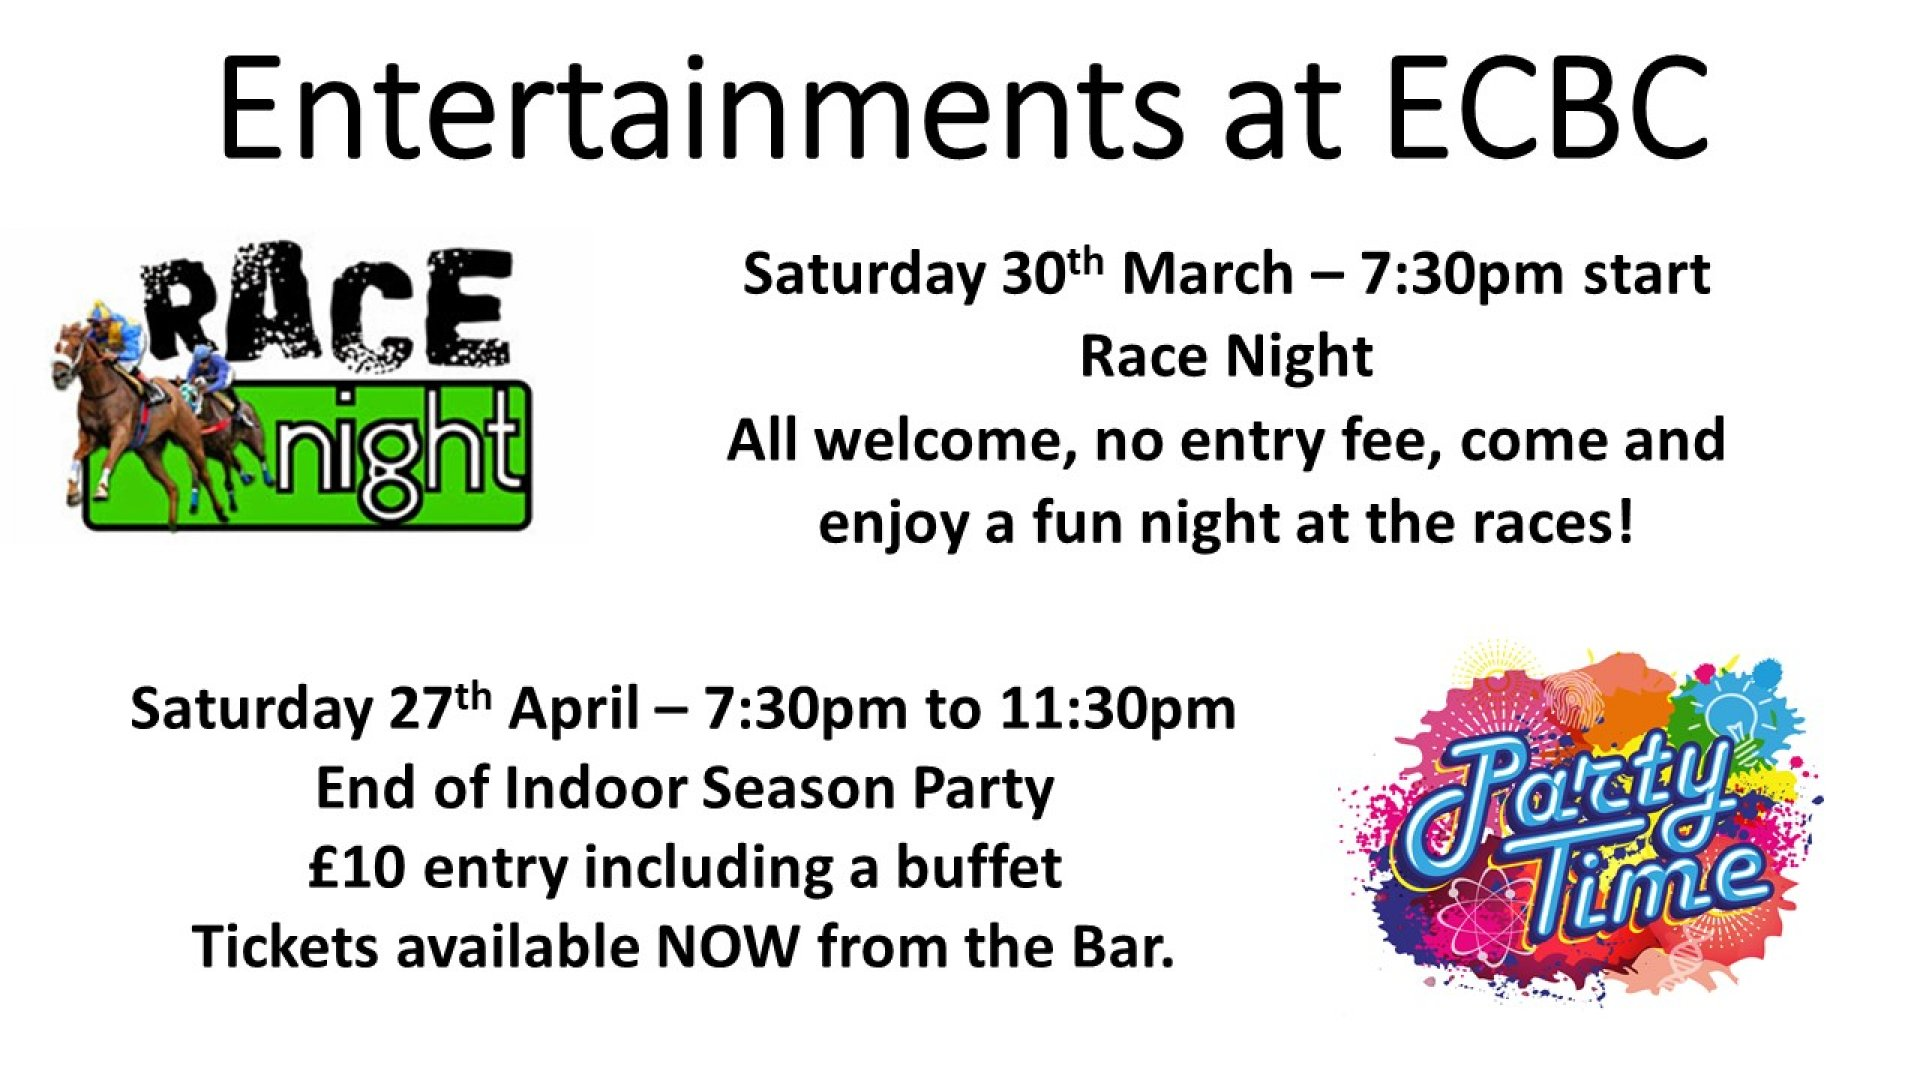 Entertainments